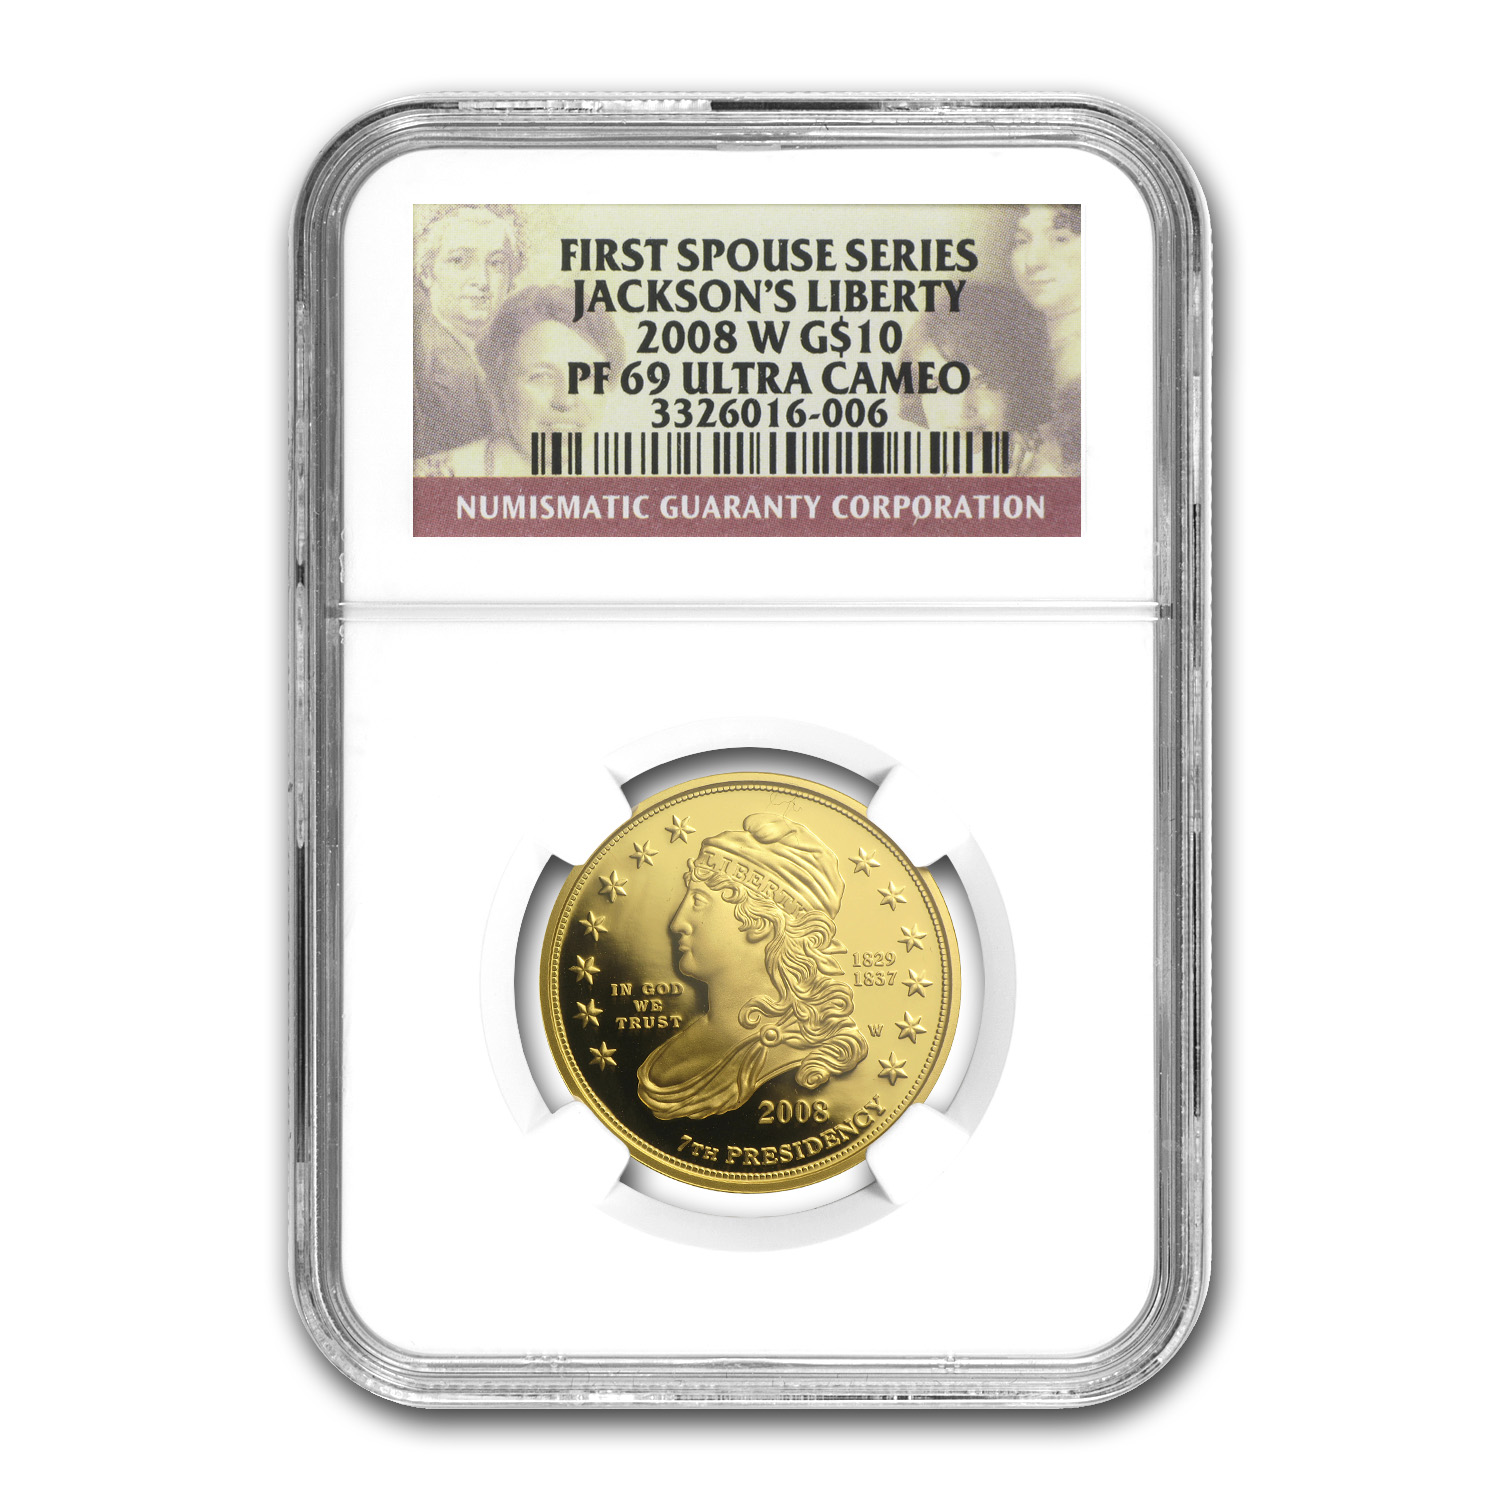 2008-W 1/2 oz Proof Gold Jackson's Liberty PF-69 NGC